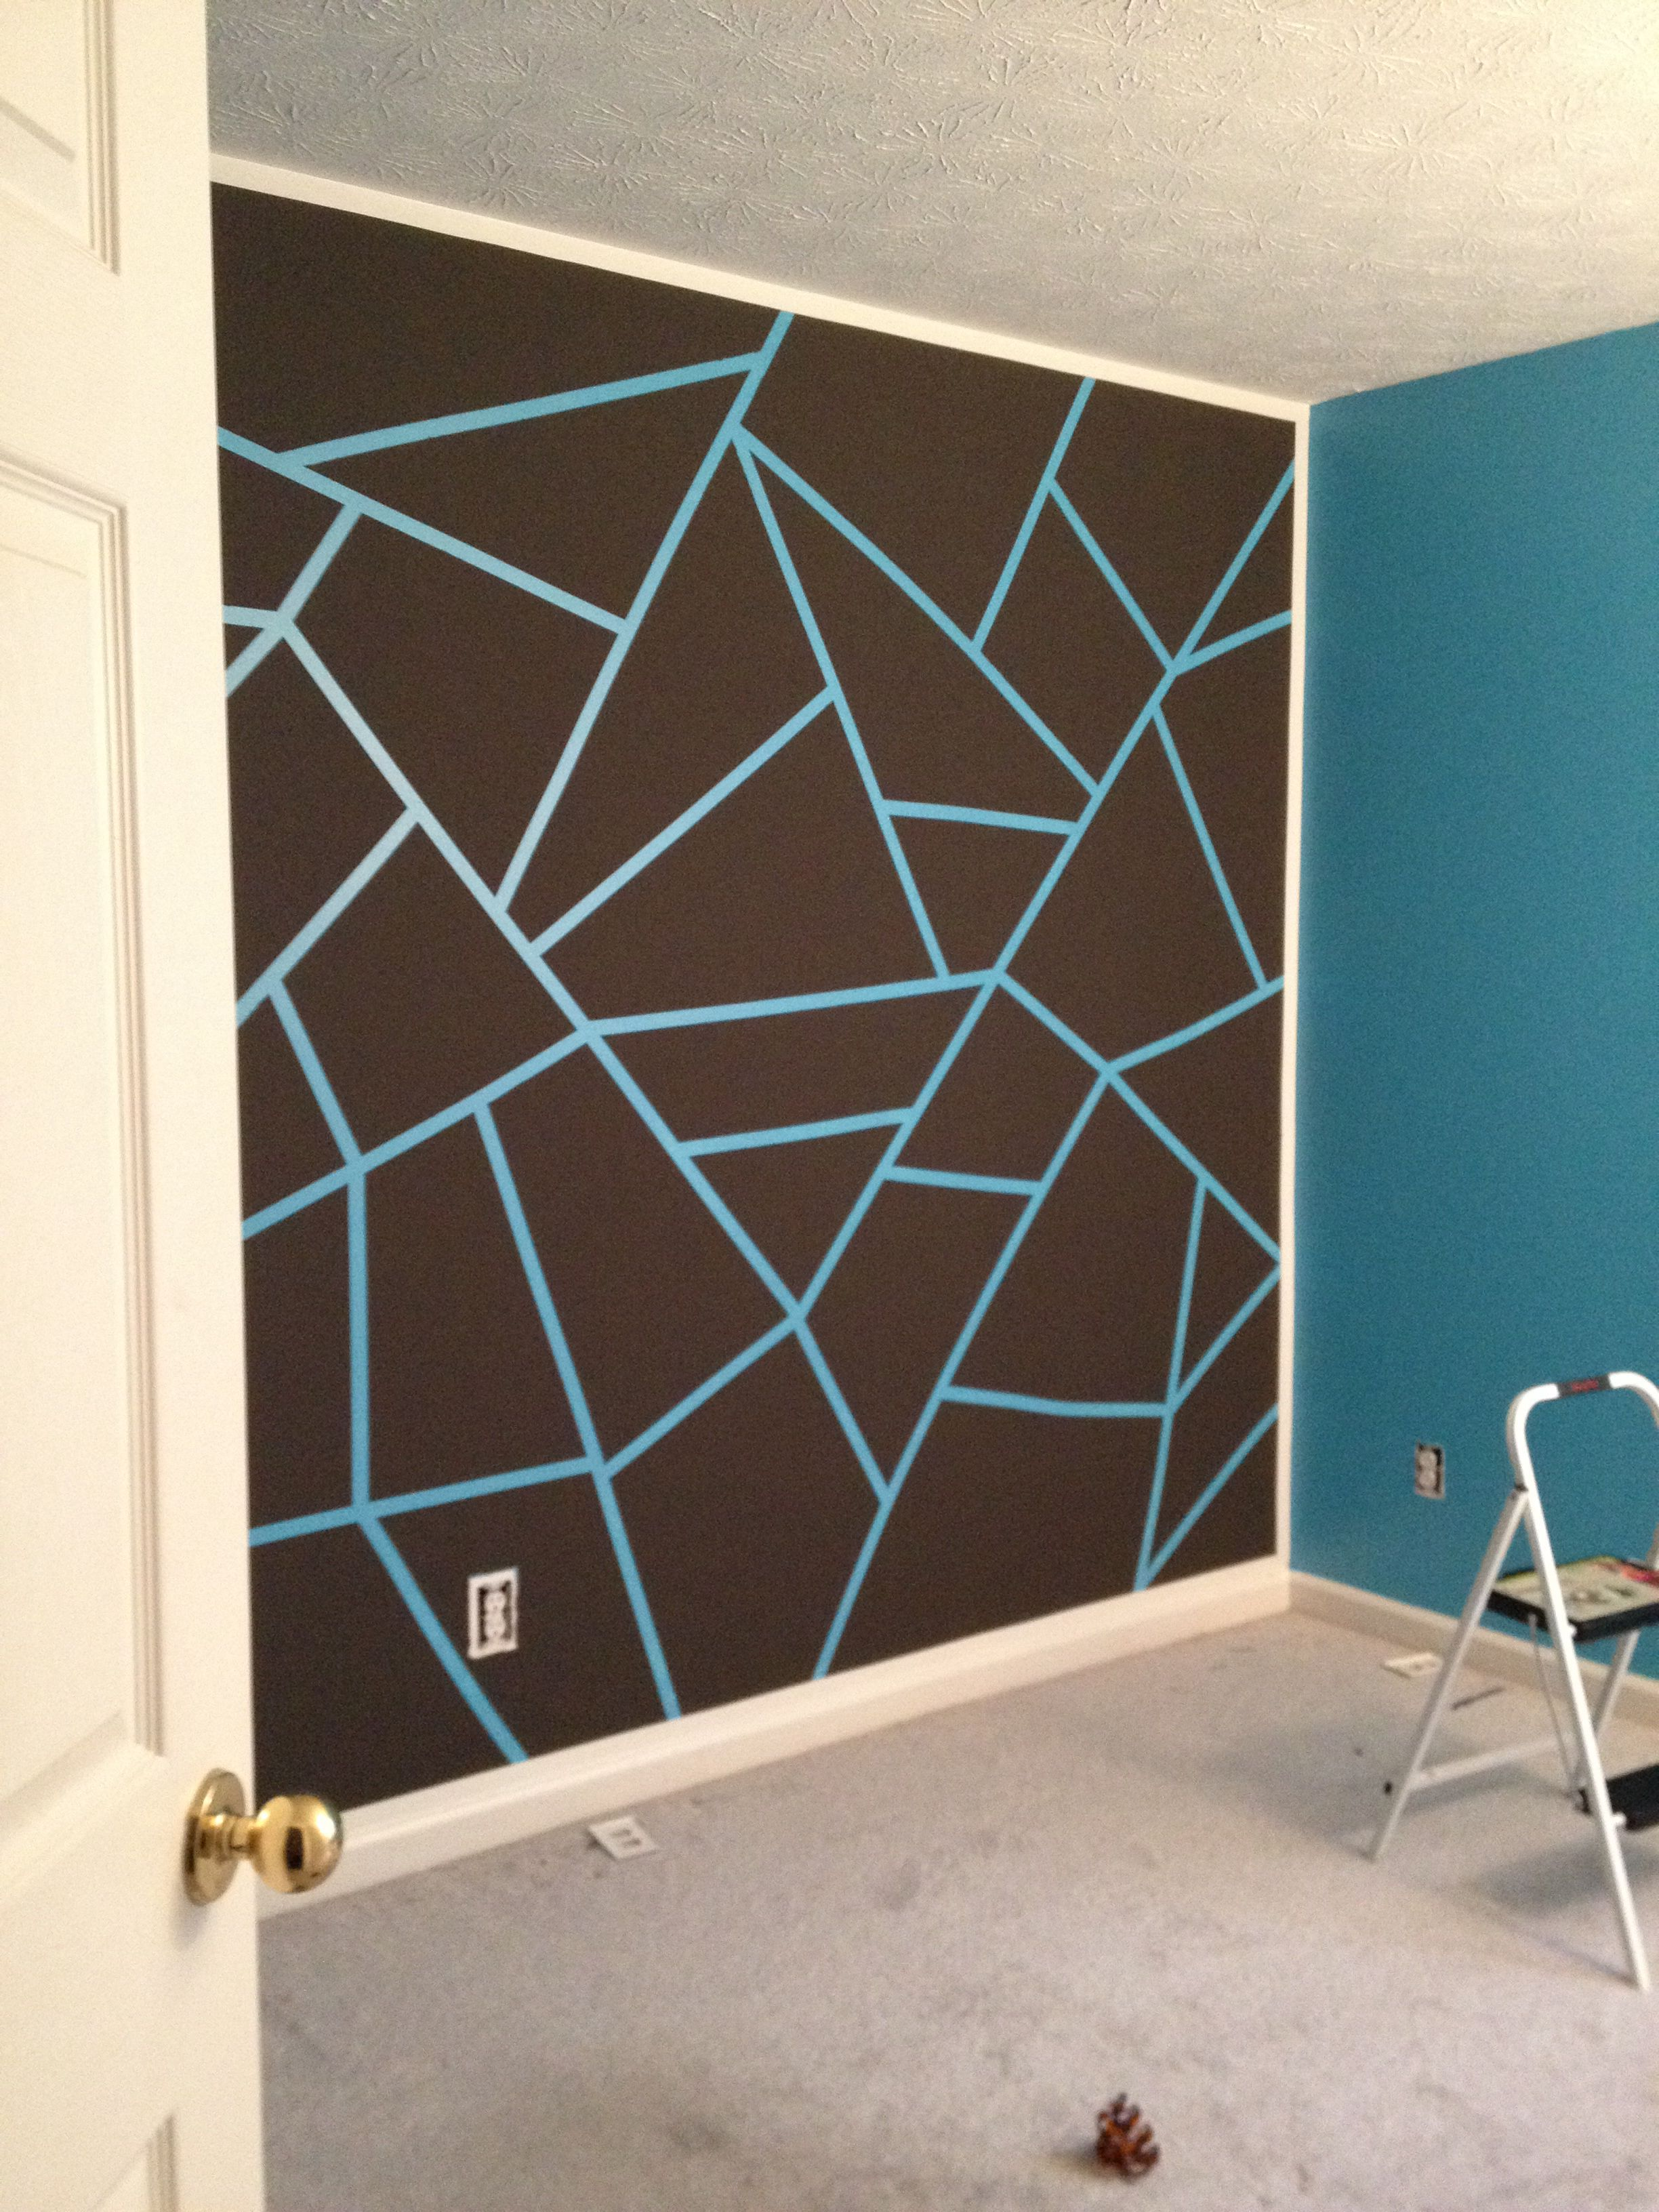 Teenage daughter room. Design Done with frog tape. Turned